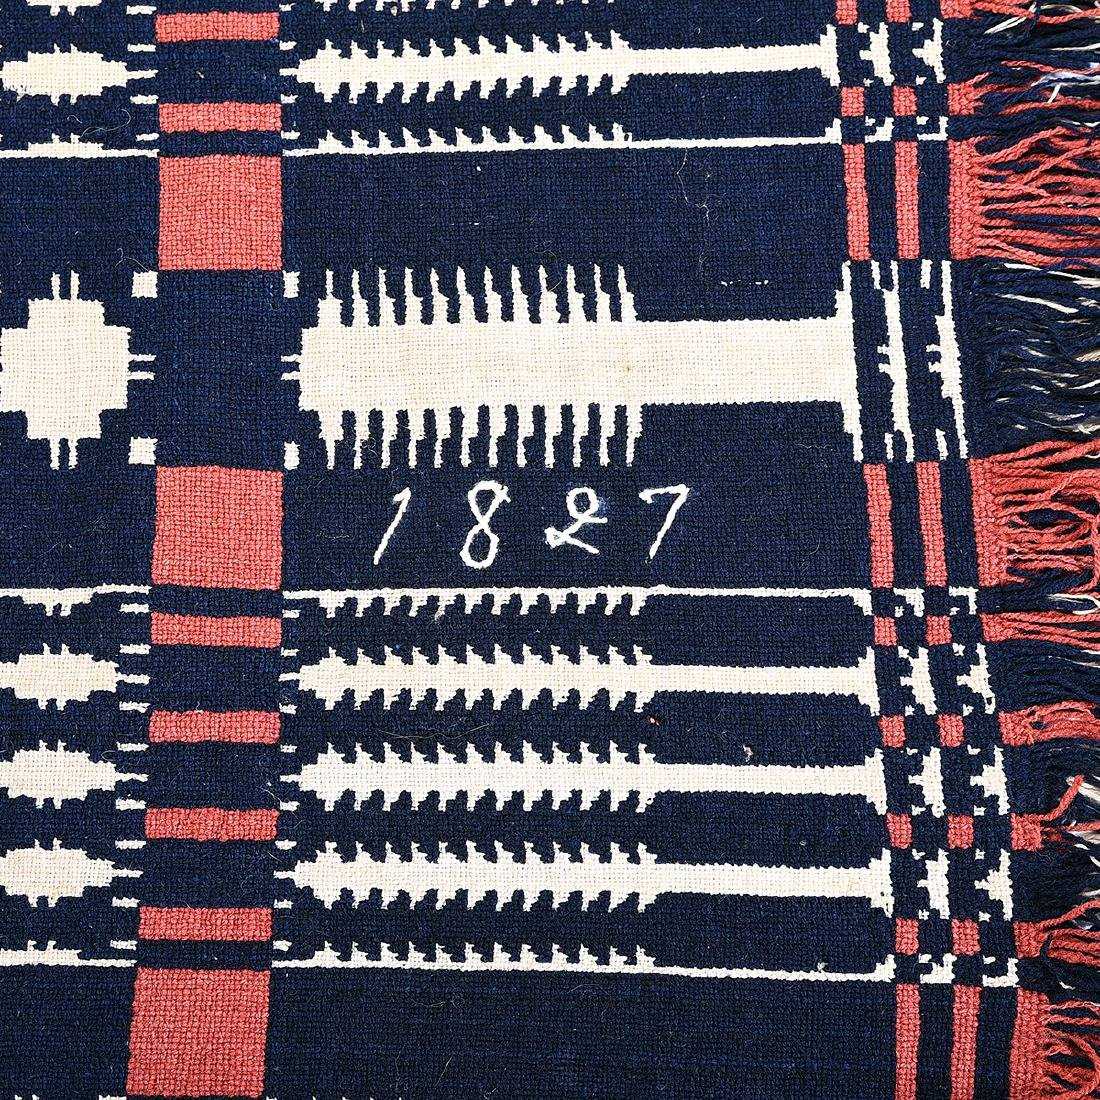 American Blue and White Wool Coverlet, Signed 1827 - 2